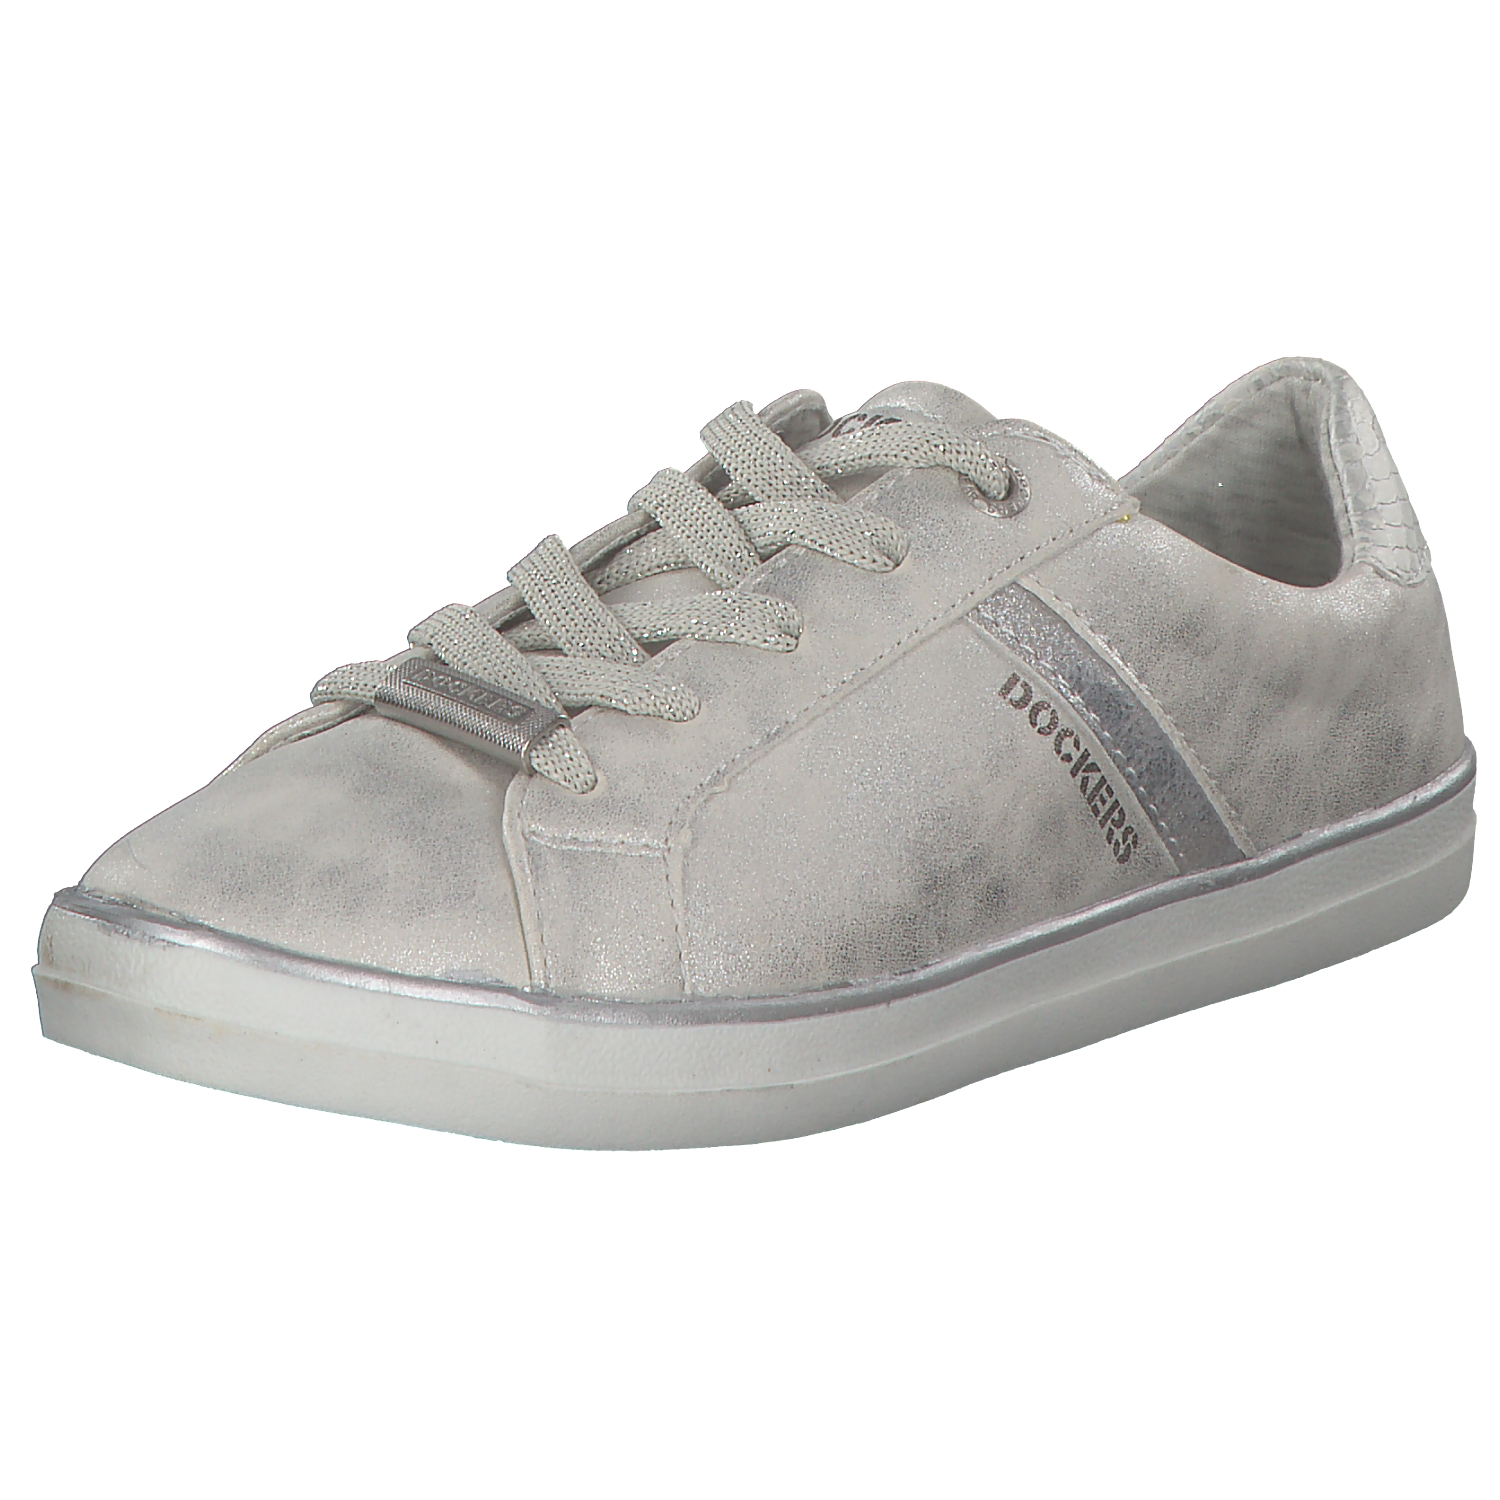 Dockers Women's Sneakers Low Lace up Slip on Lace-Up 40aa814 Silver New